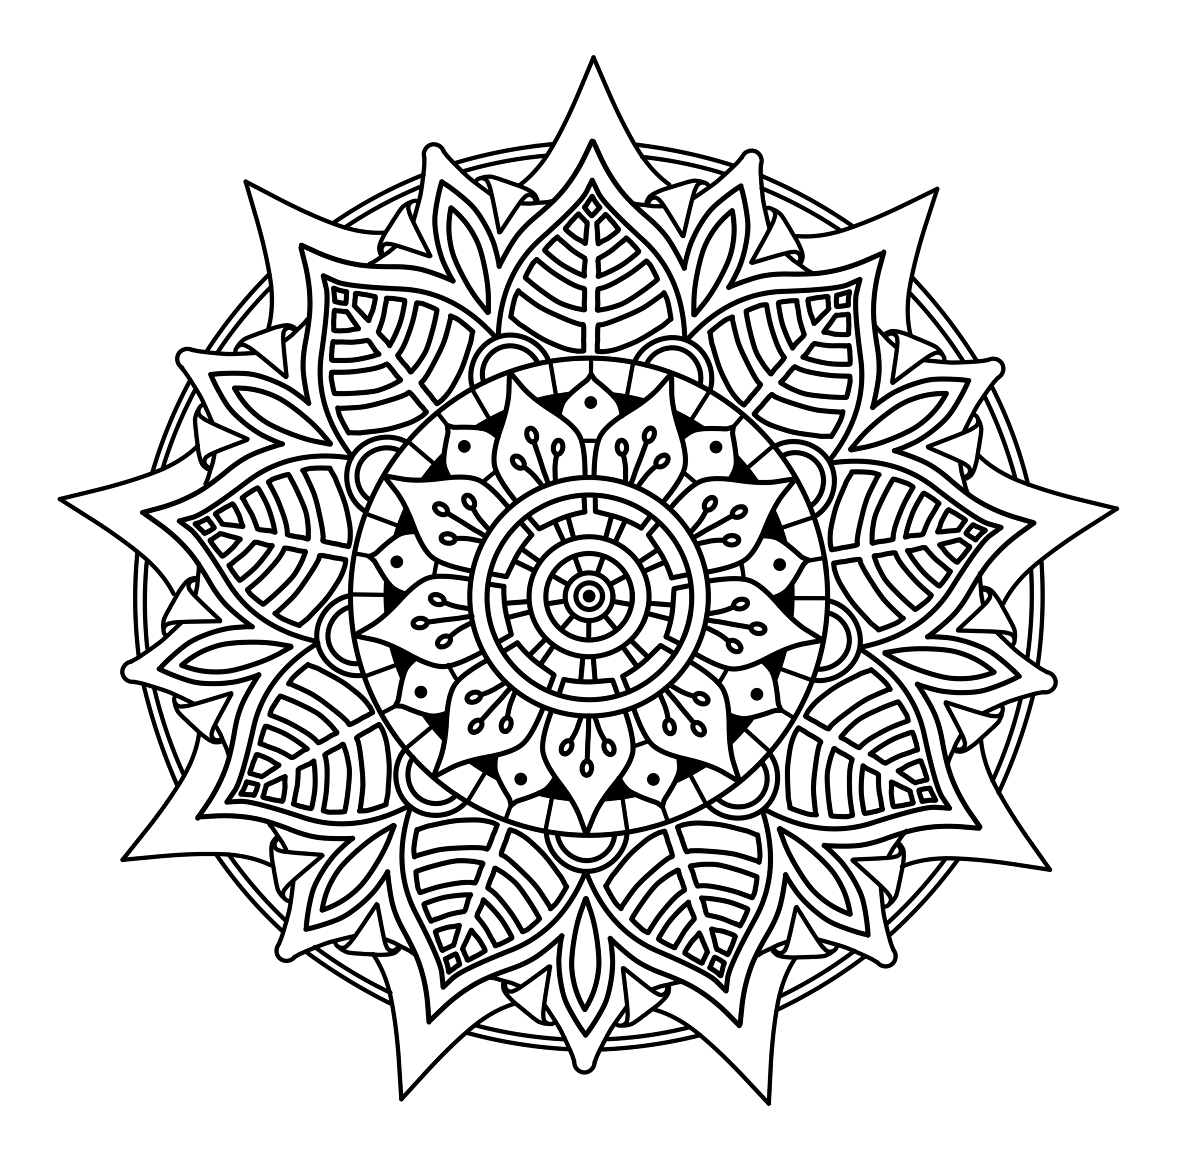 How to Draw a Mandala in Concepts - Concepts App - Medium